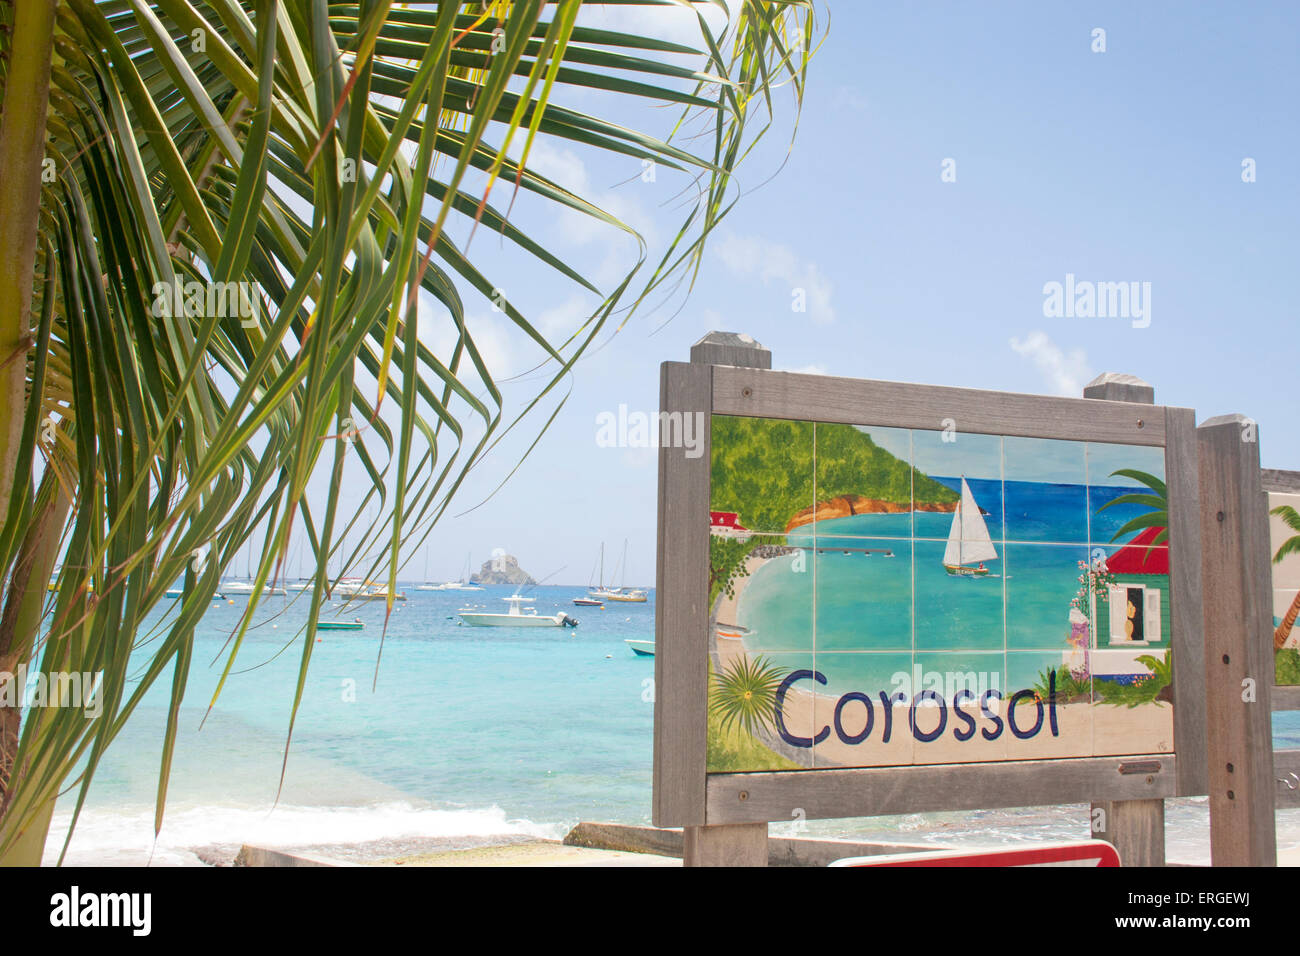 A colorful mosaic tile sign for Corossol beach in St. Barts - Stock Image